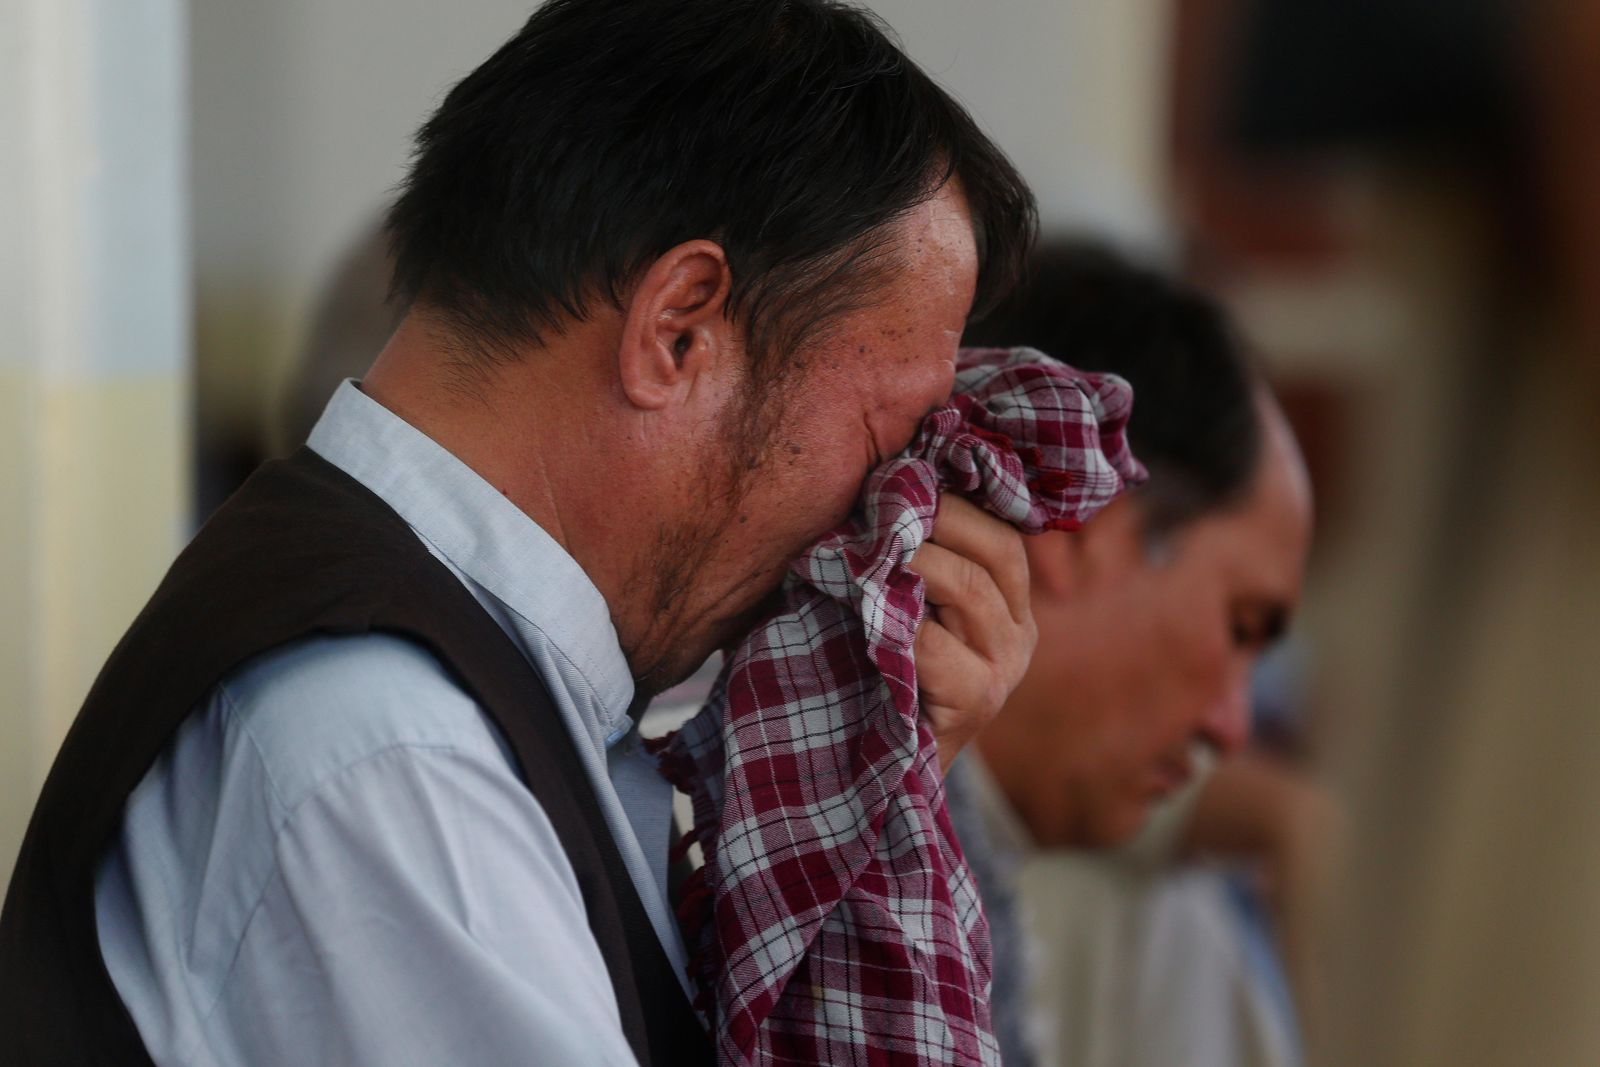 Men mourn for the victims of the Dubai City wedding hall bombing during a memorial service at a mosque in Kabul, Afghanistan, Tuesday, Aug. 20, 2019. (AP Photo/Rafiq Maqbool)